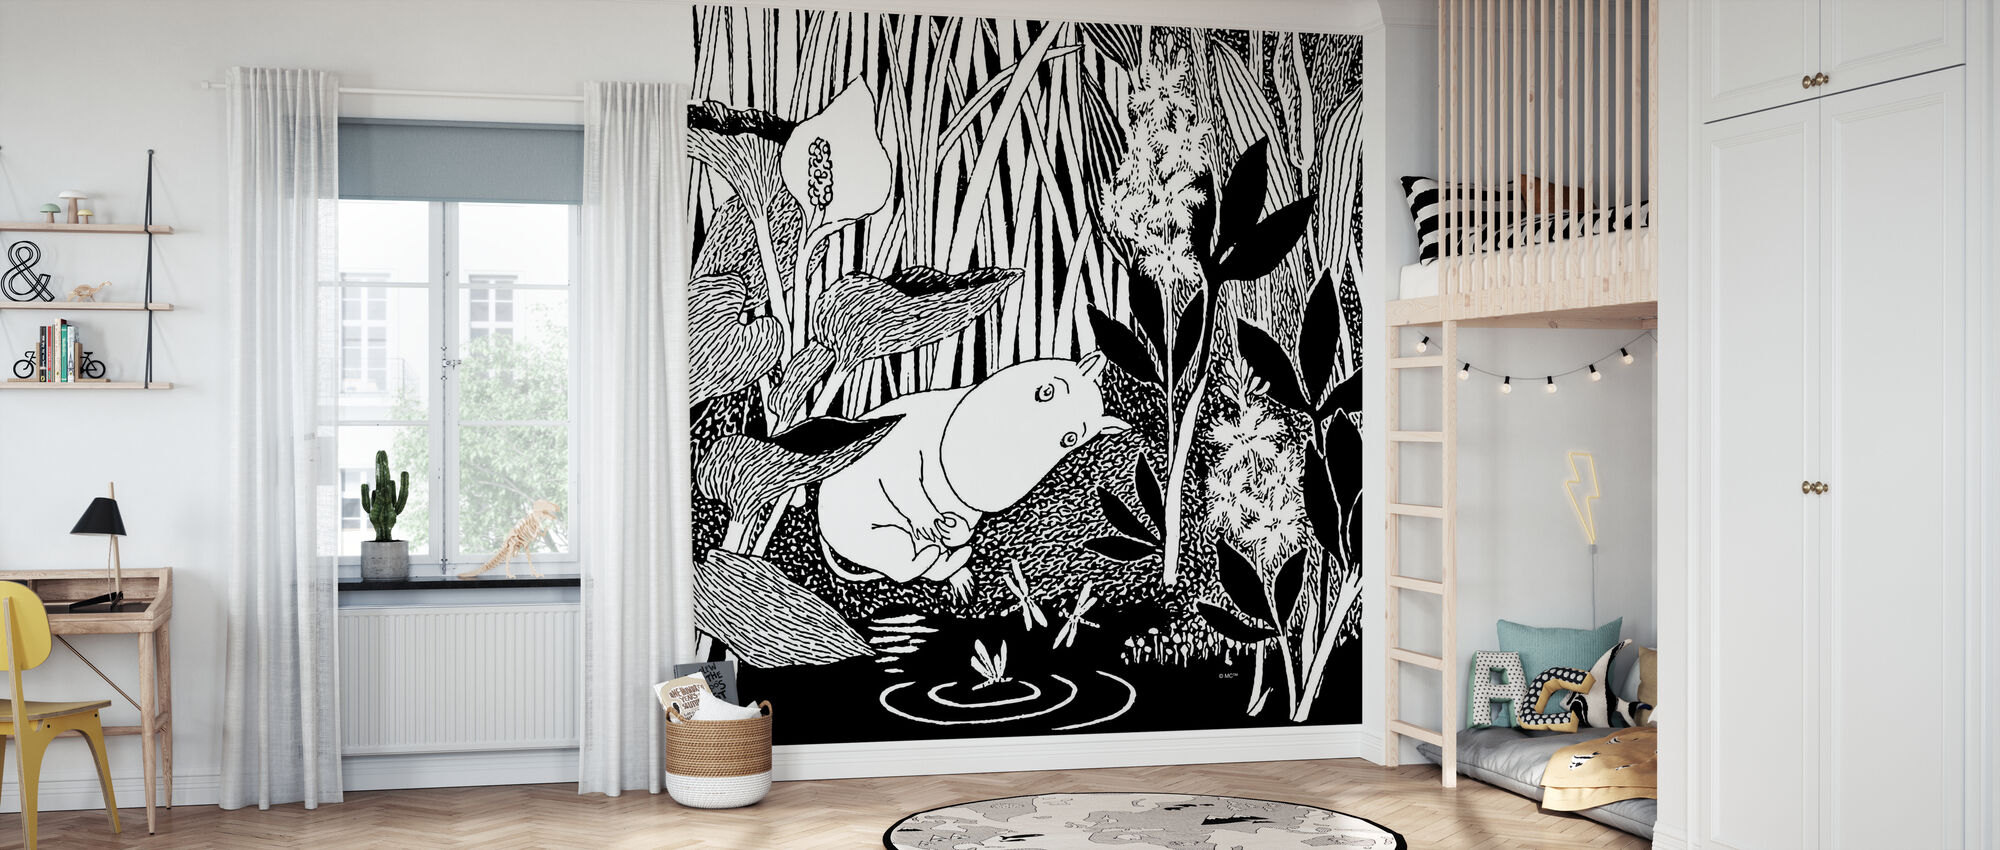 Moomin - Sleeping - Wallpaper - Kids Room